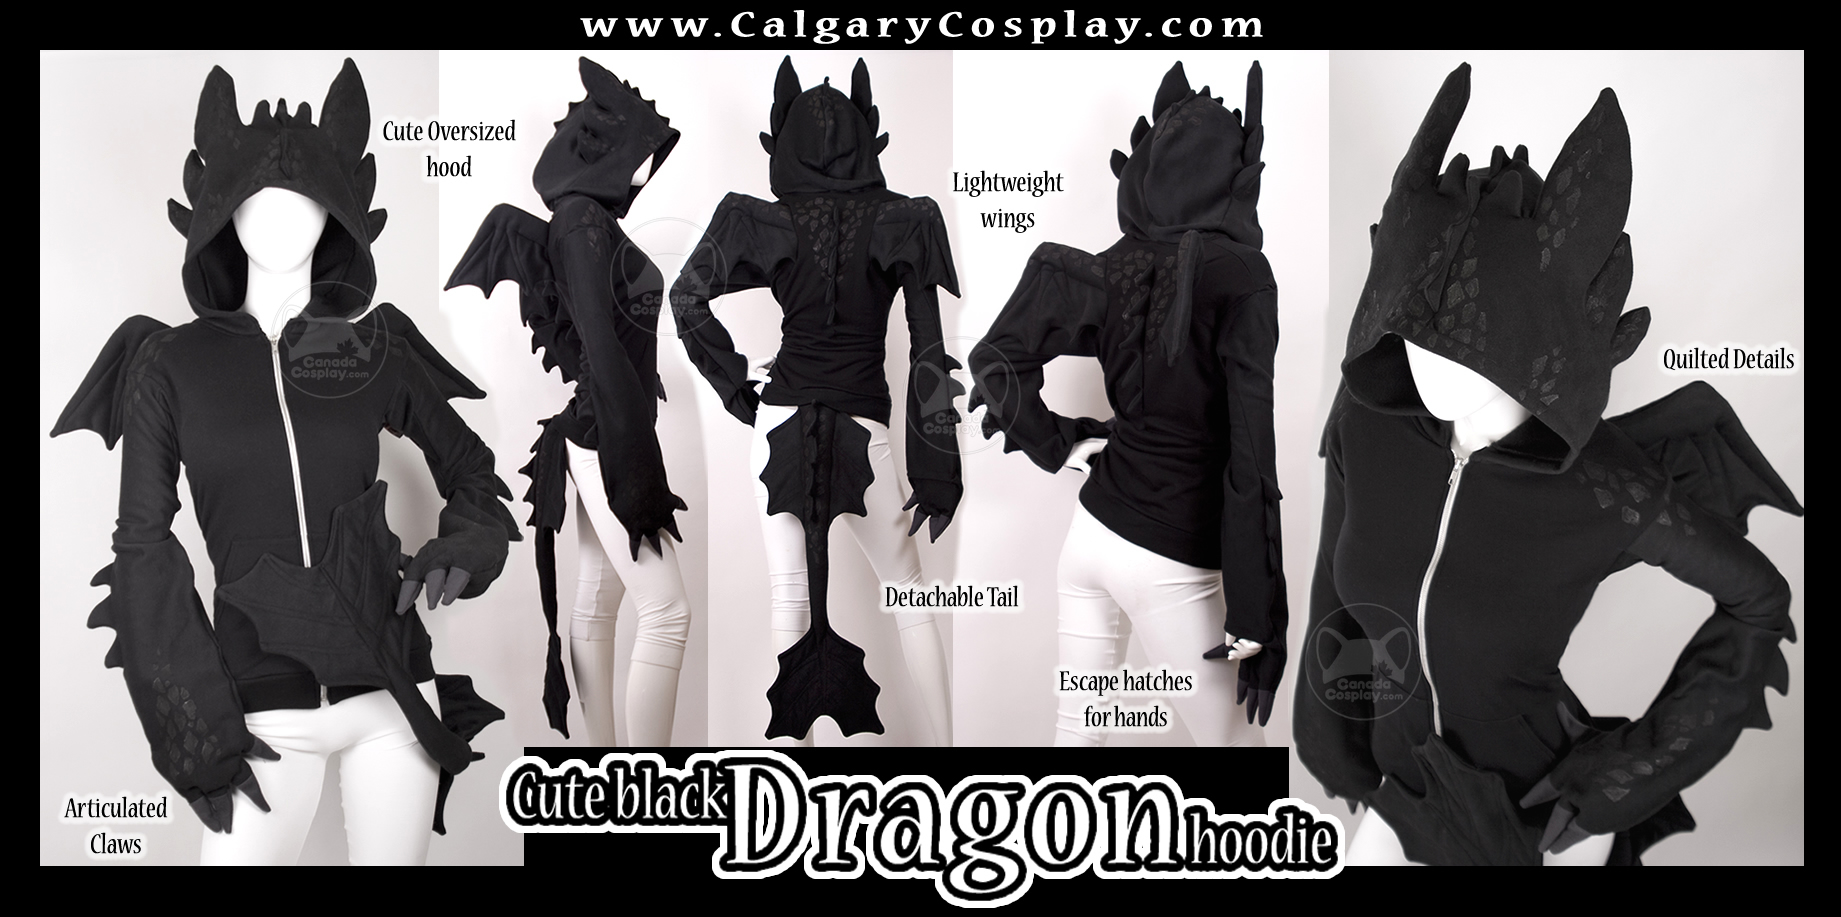 Cute Black Dragon Hoodie by calgarycosplay